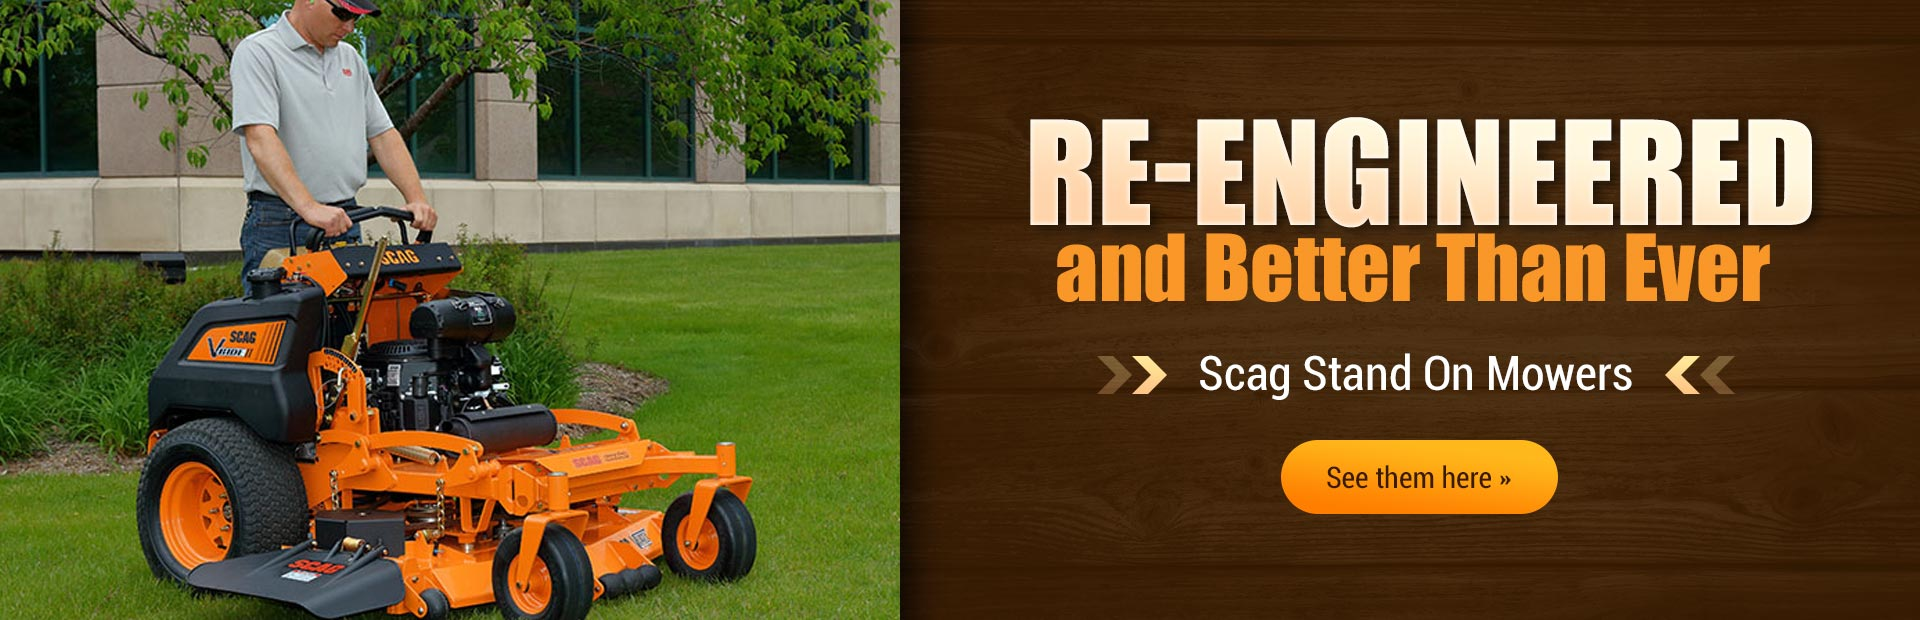 Scag Stand On Mowers: Click here to see the models.